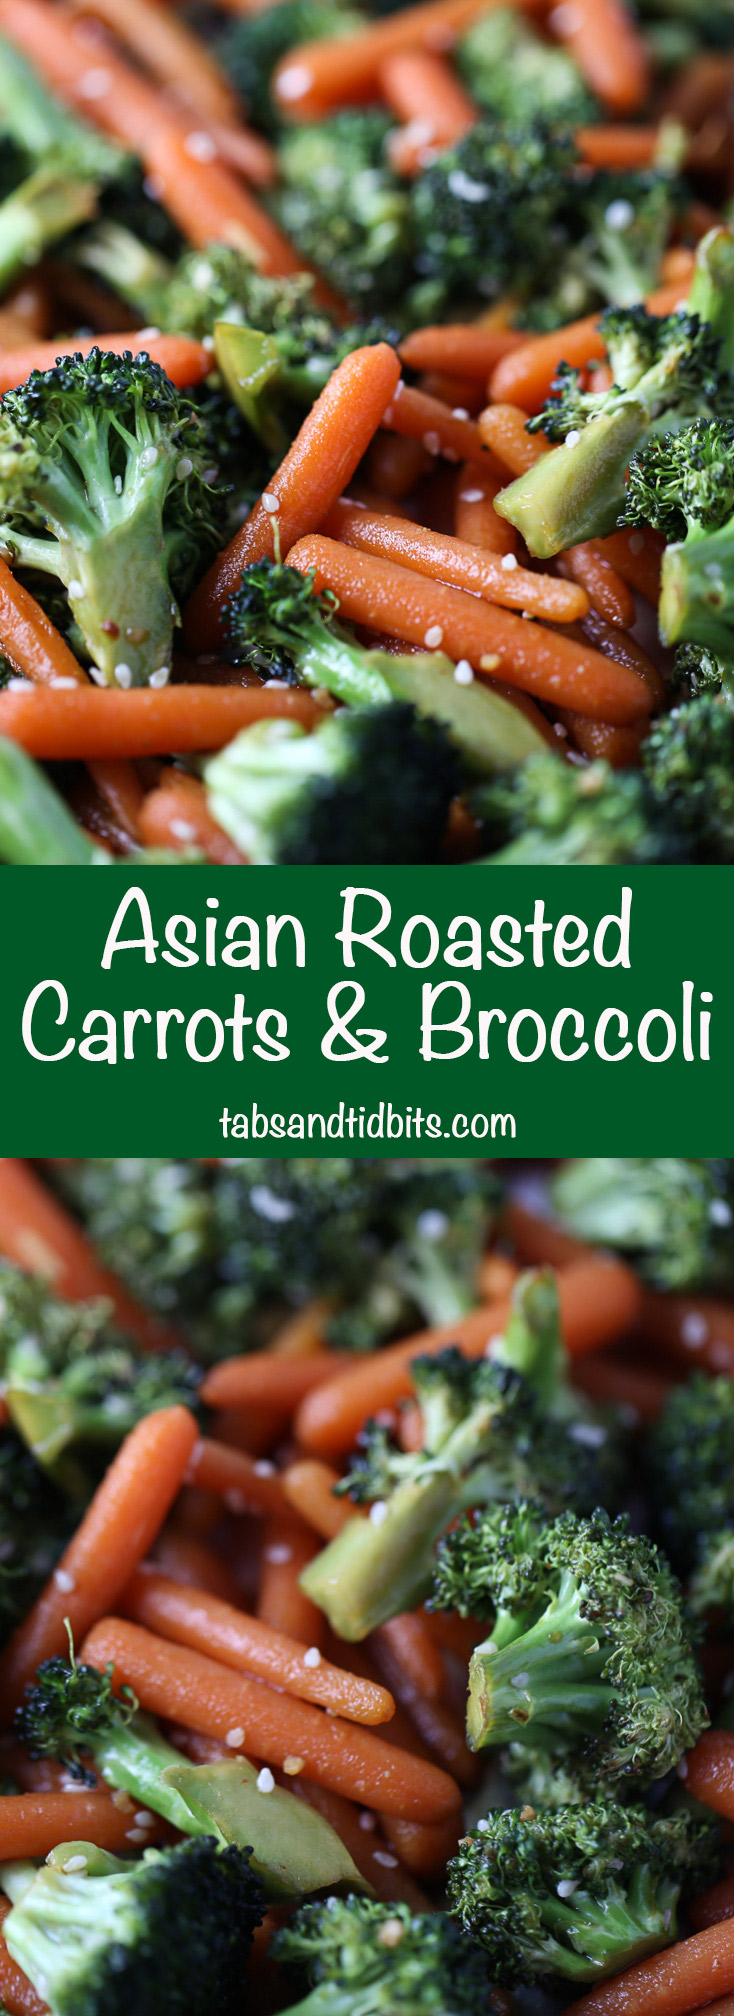 Asian Roasted Carrots & Broccoli - Roasted carrots & broccoli coated with a delicious soy sauce dressing!